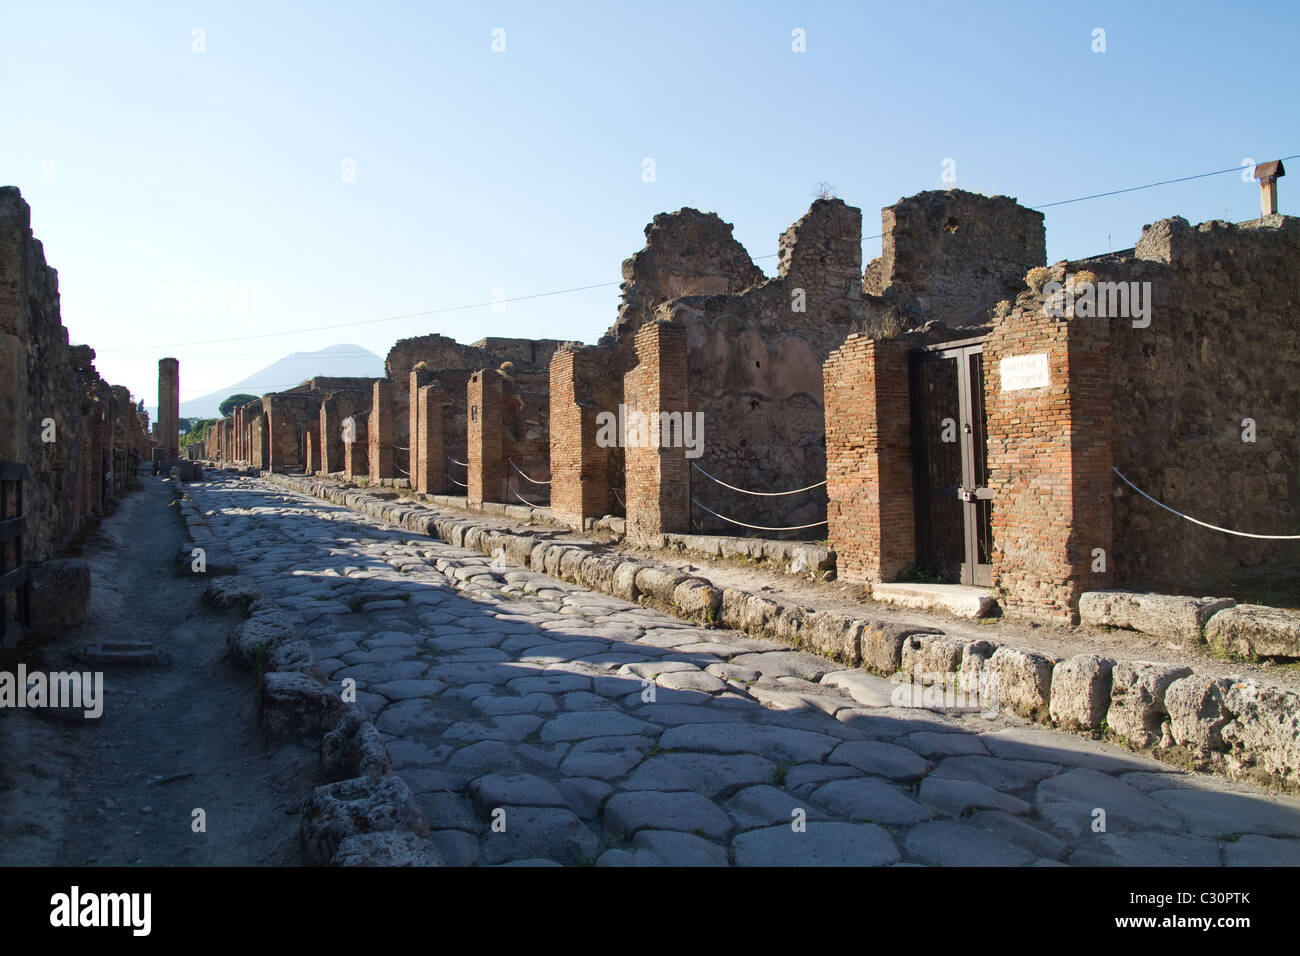 A street in ruined city of Pompeii, Italy Stock Photo